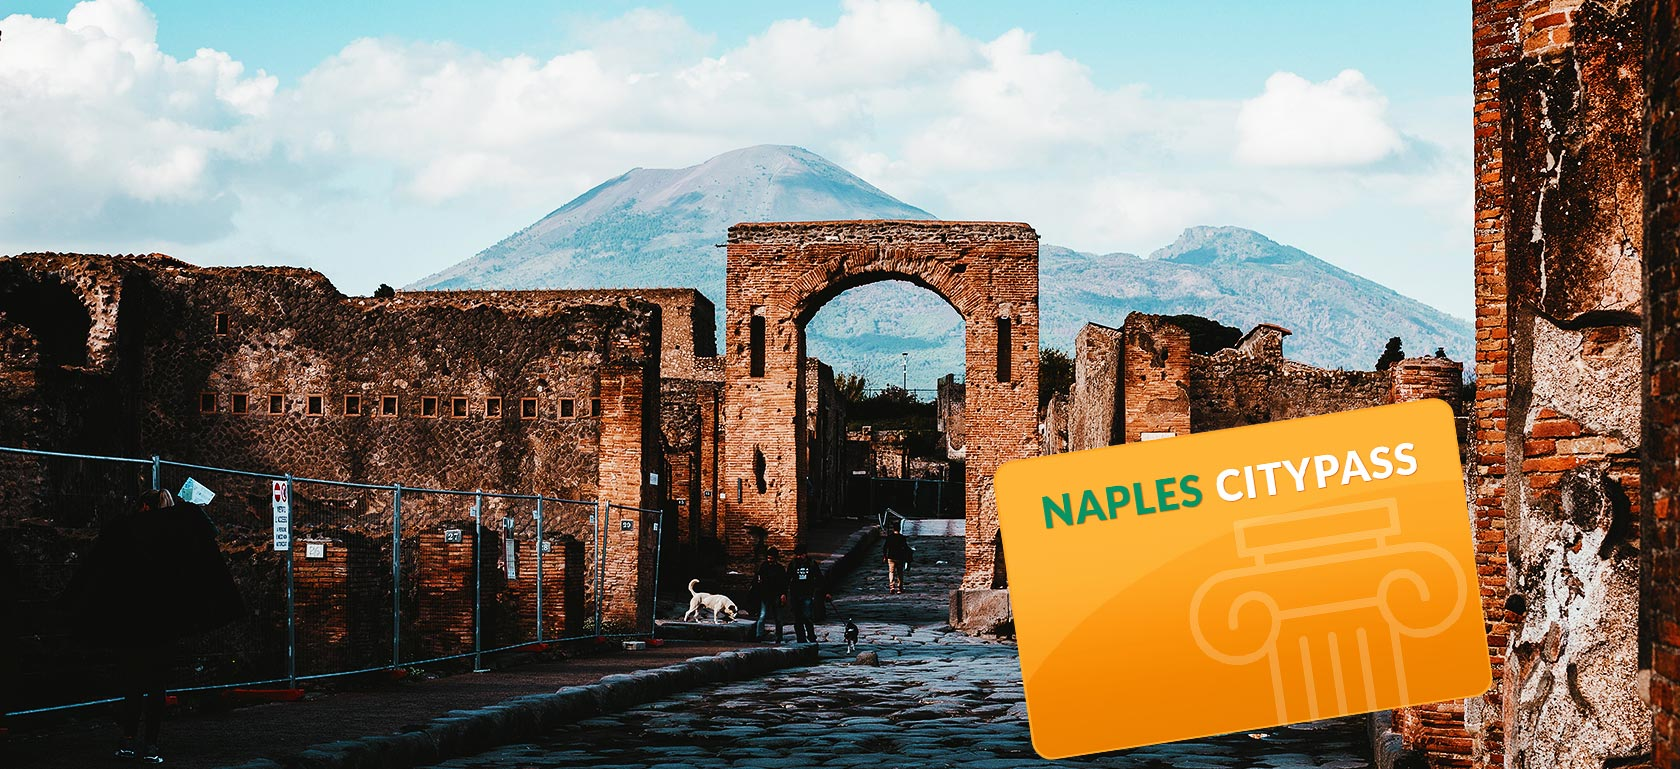 Neapolu City Pass